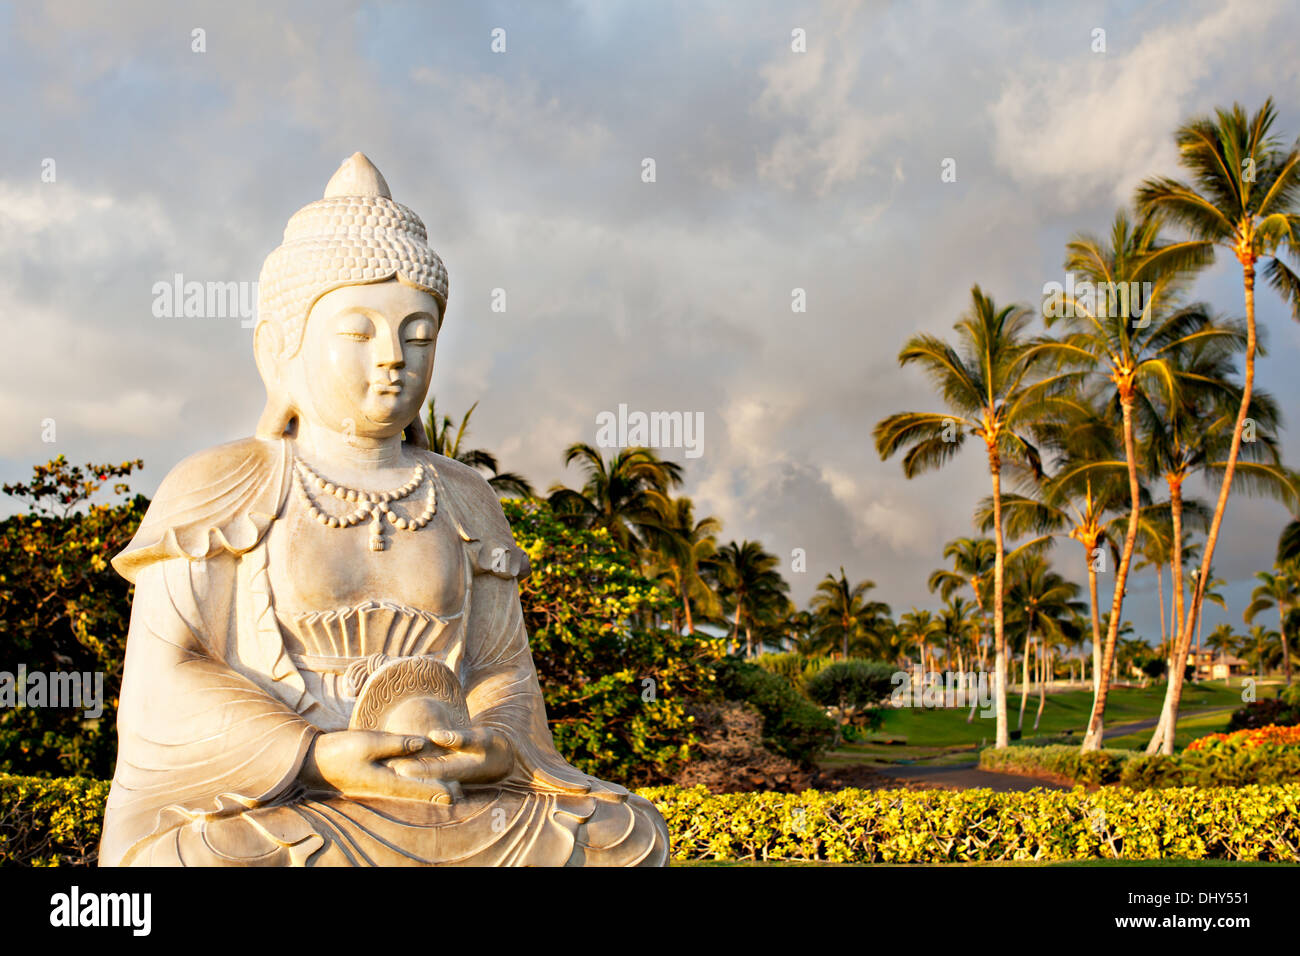 Prayer at Sunset in Paradise with Buddha - Stock Image